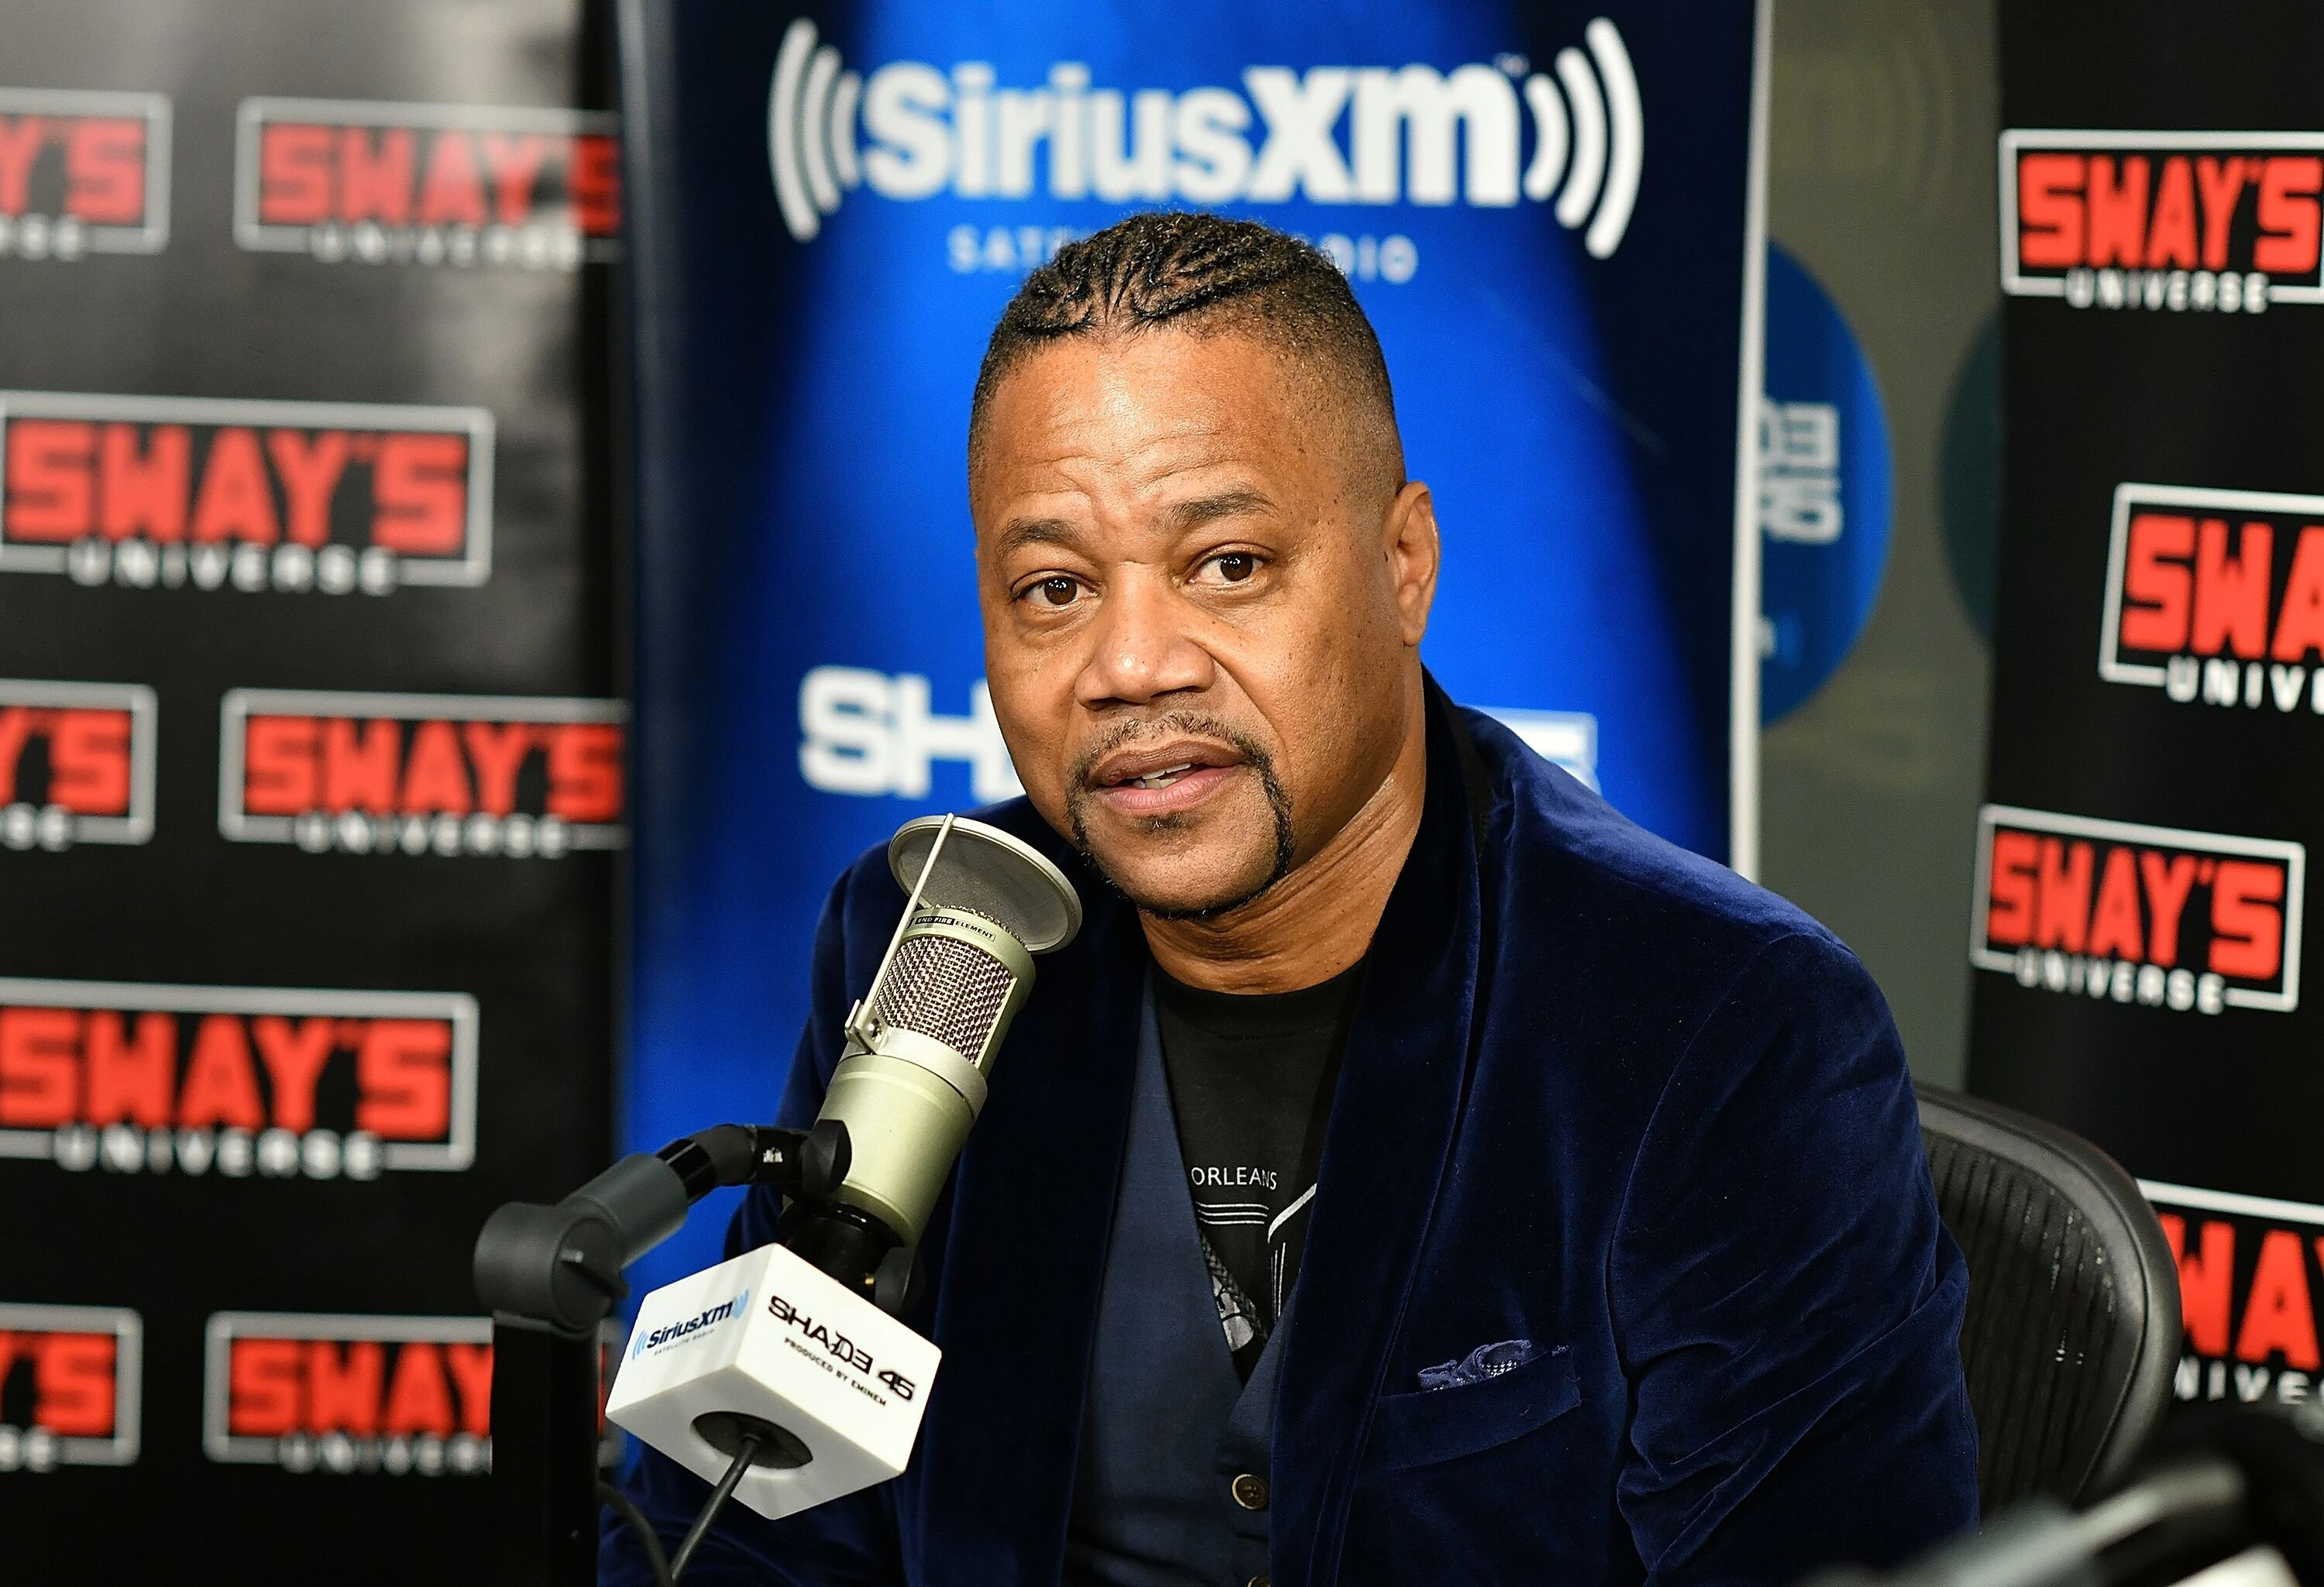 Cuba Gooding Jr. at a SiriusXM Interview | Photo: Getty Images